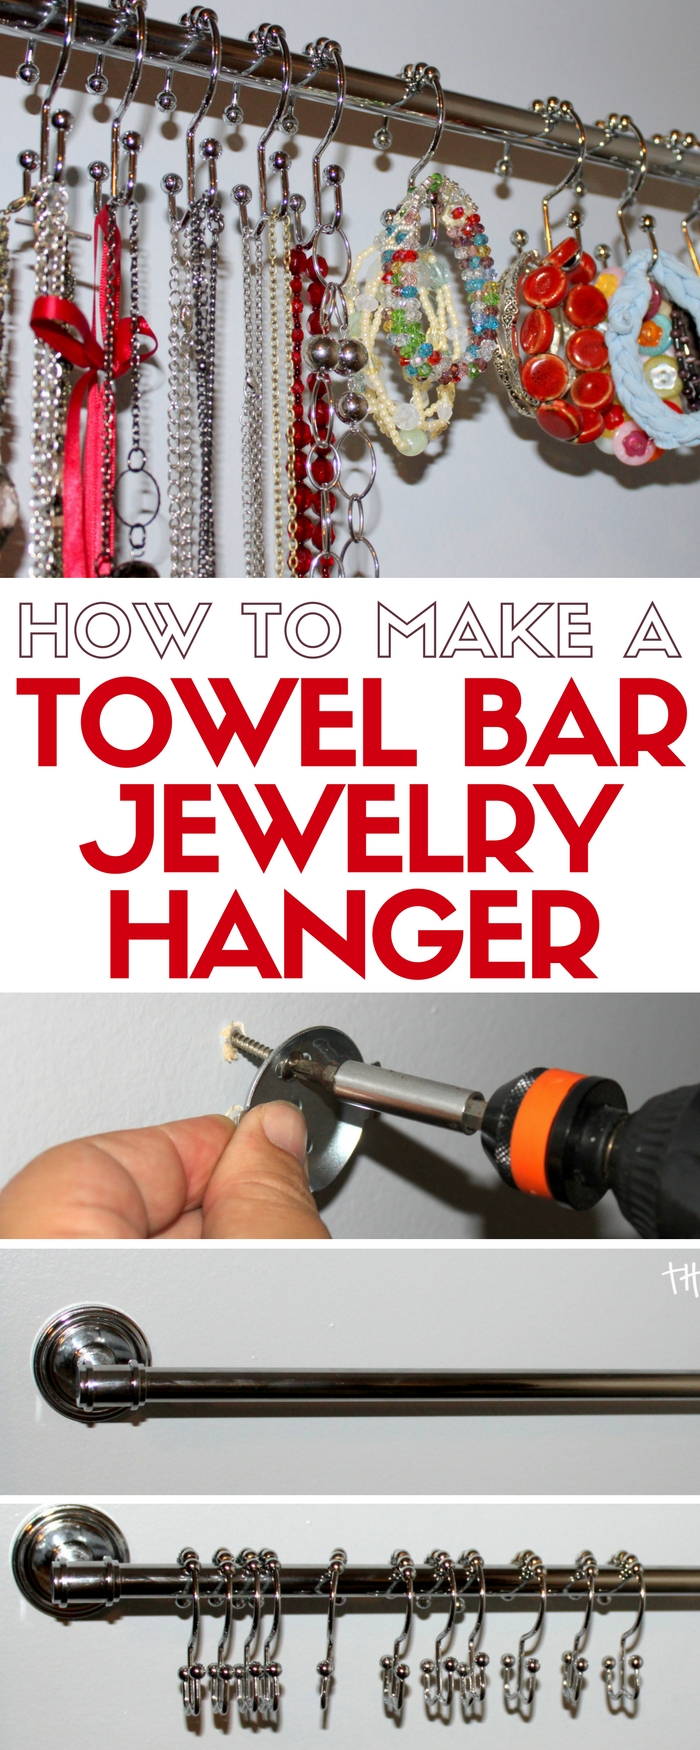 Organize your jewelry on a towel bar and shower hooks. Necklaces are tangle free and you can easily find your favorites. An easy DIY craft tutorial idea.